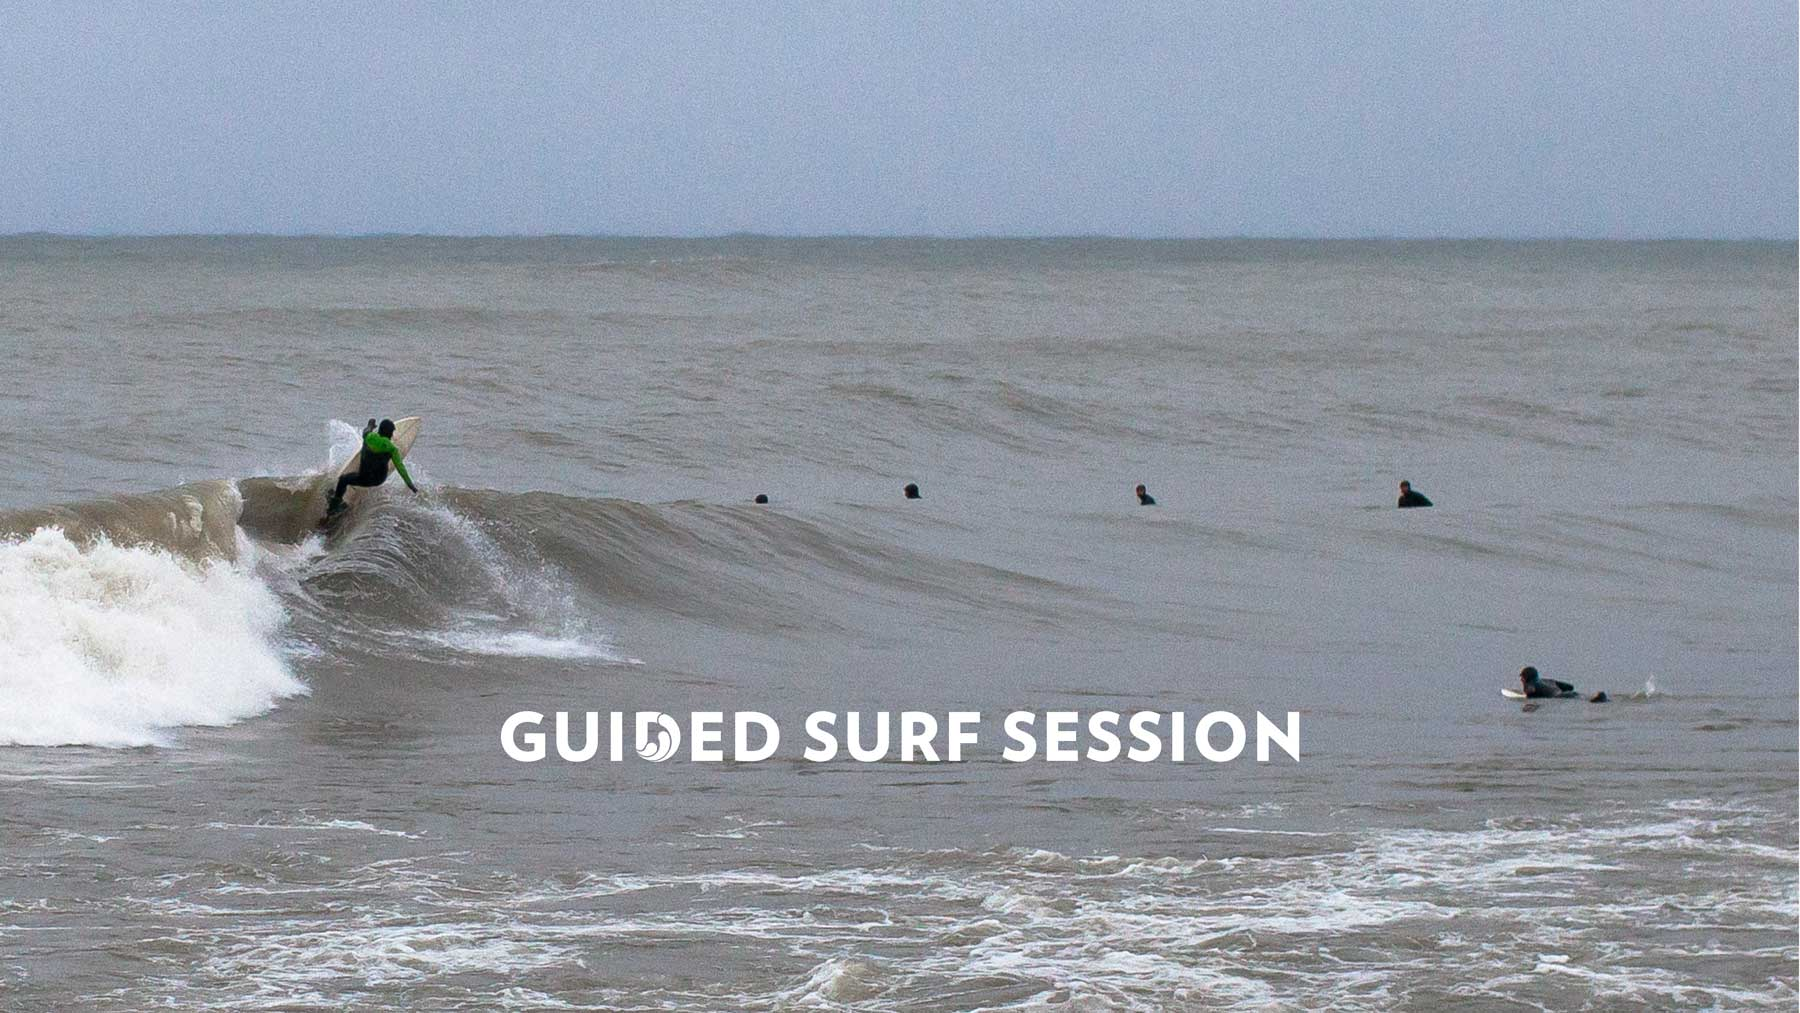 Guided Surf Session